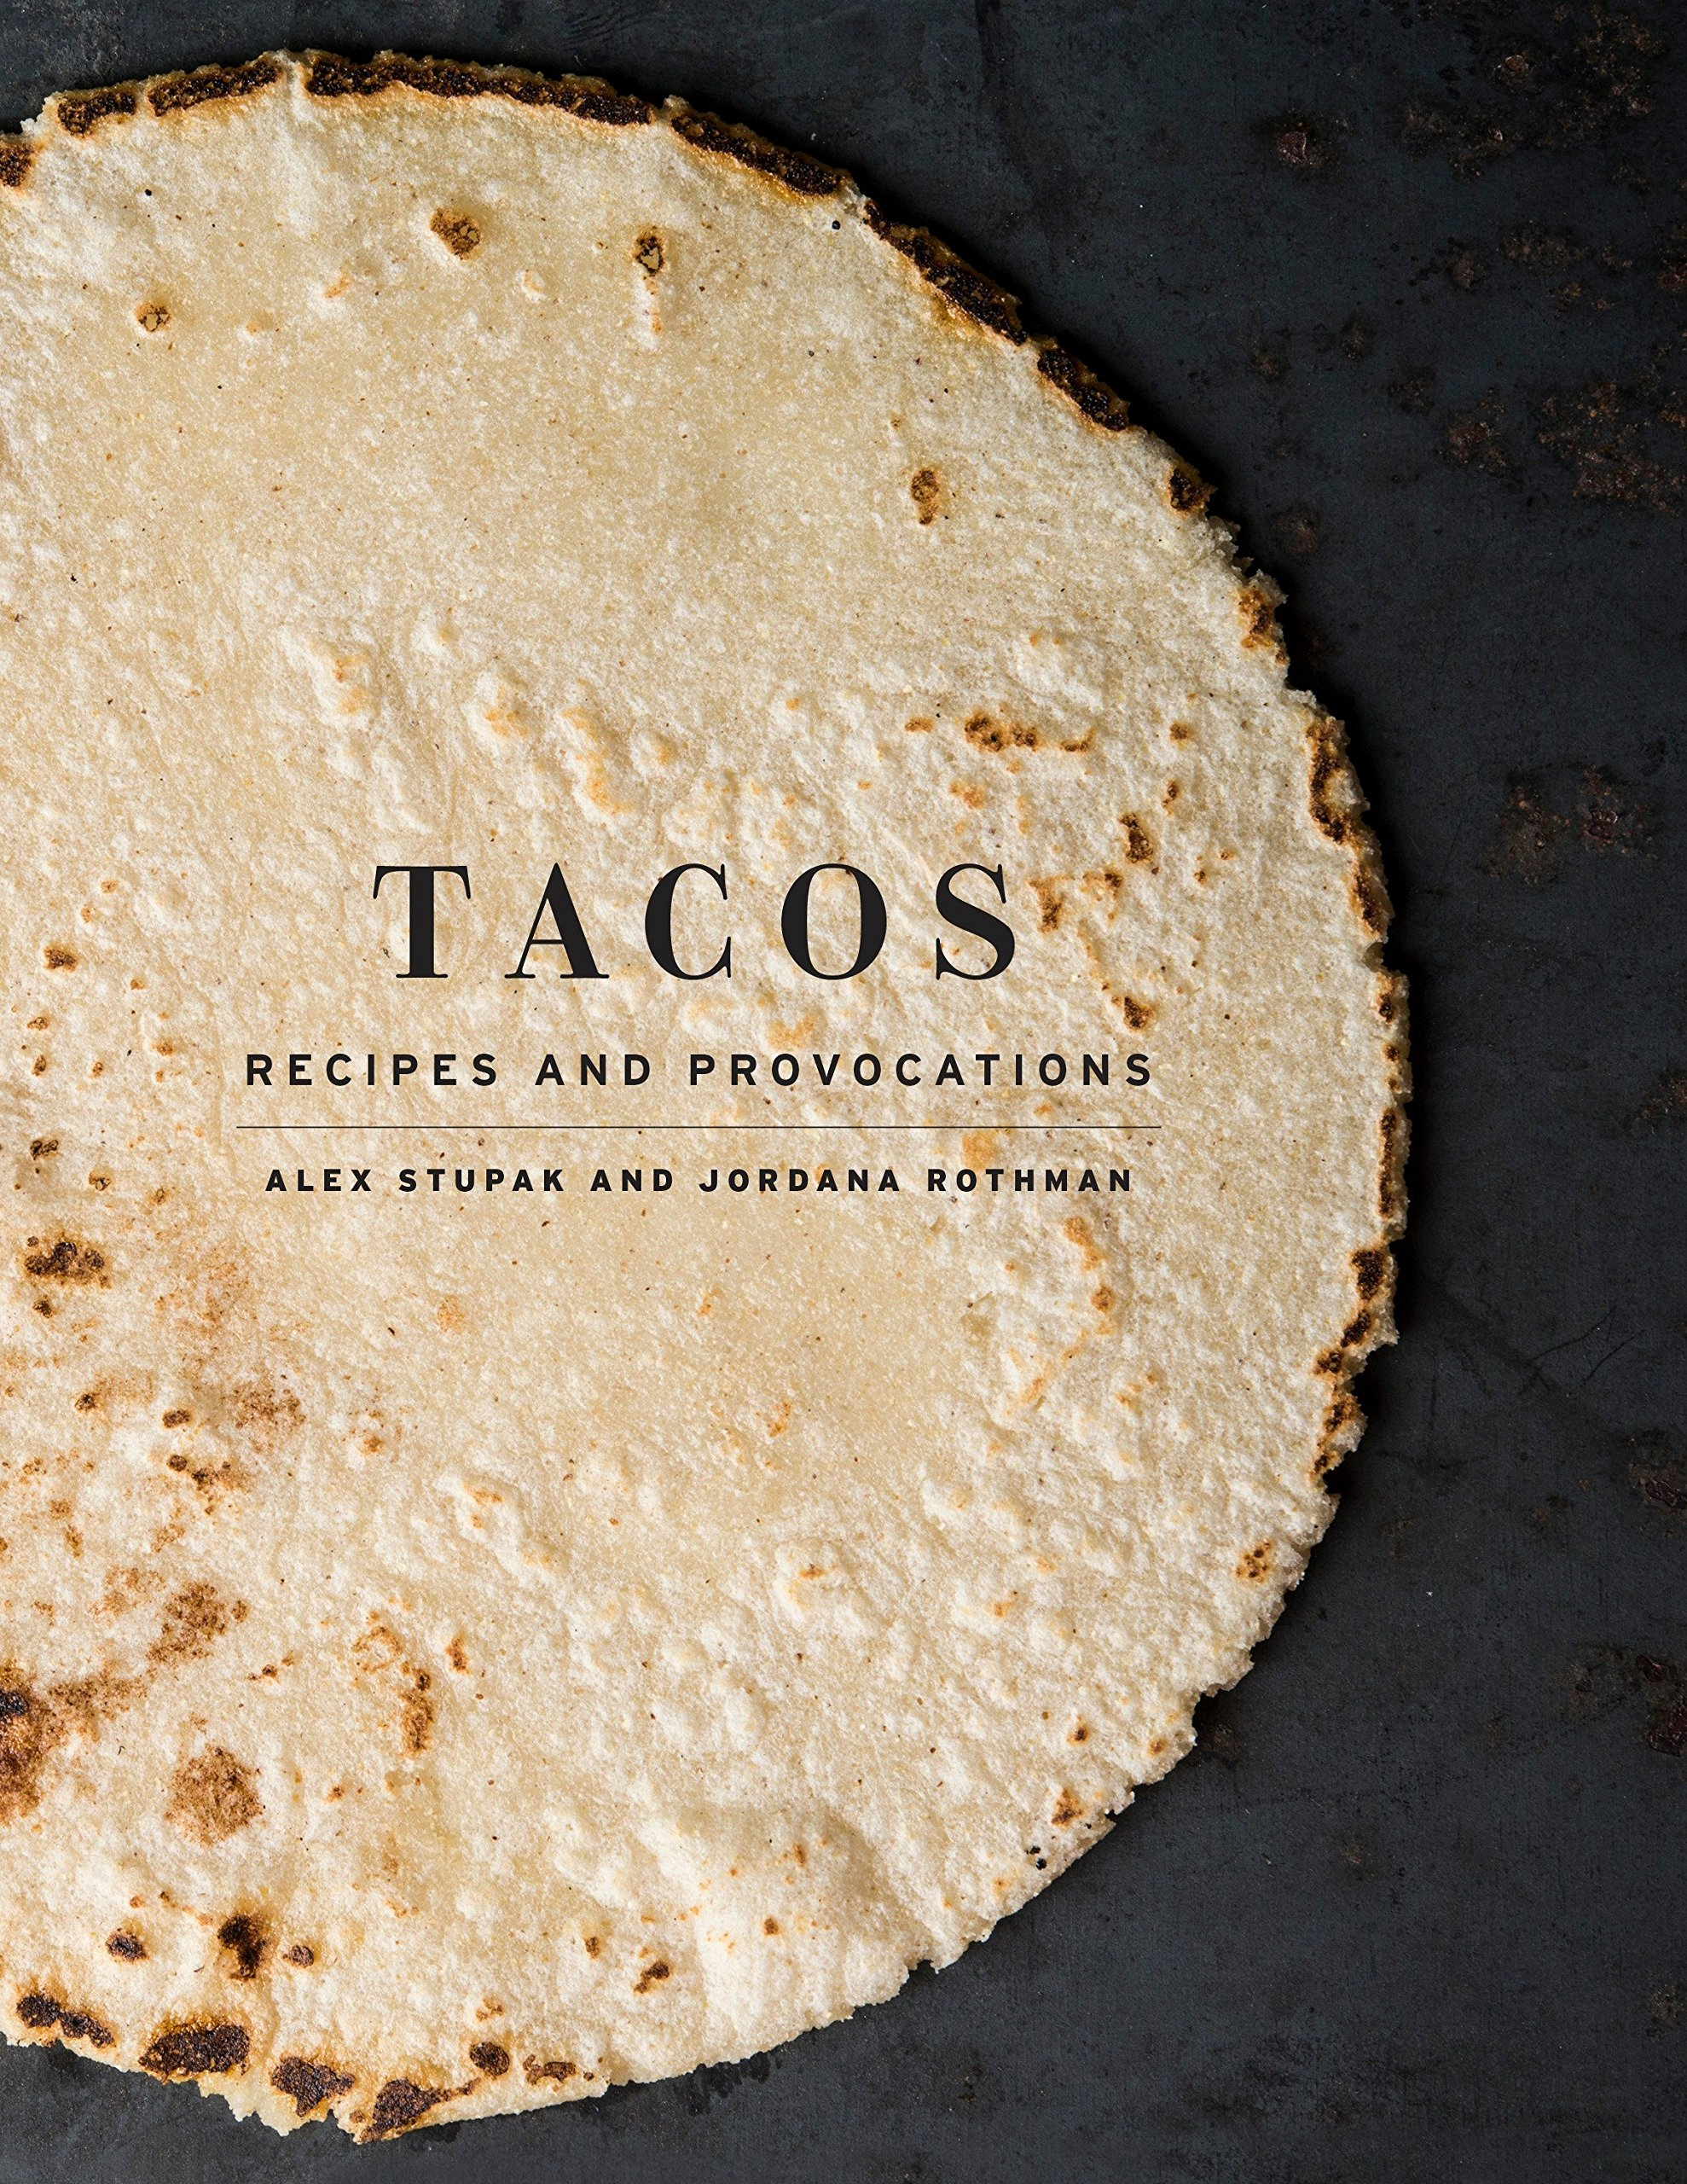 Tacos: Recipes and Provocations: A Cookbook by Clarkson Potter